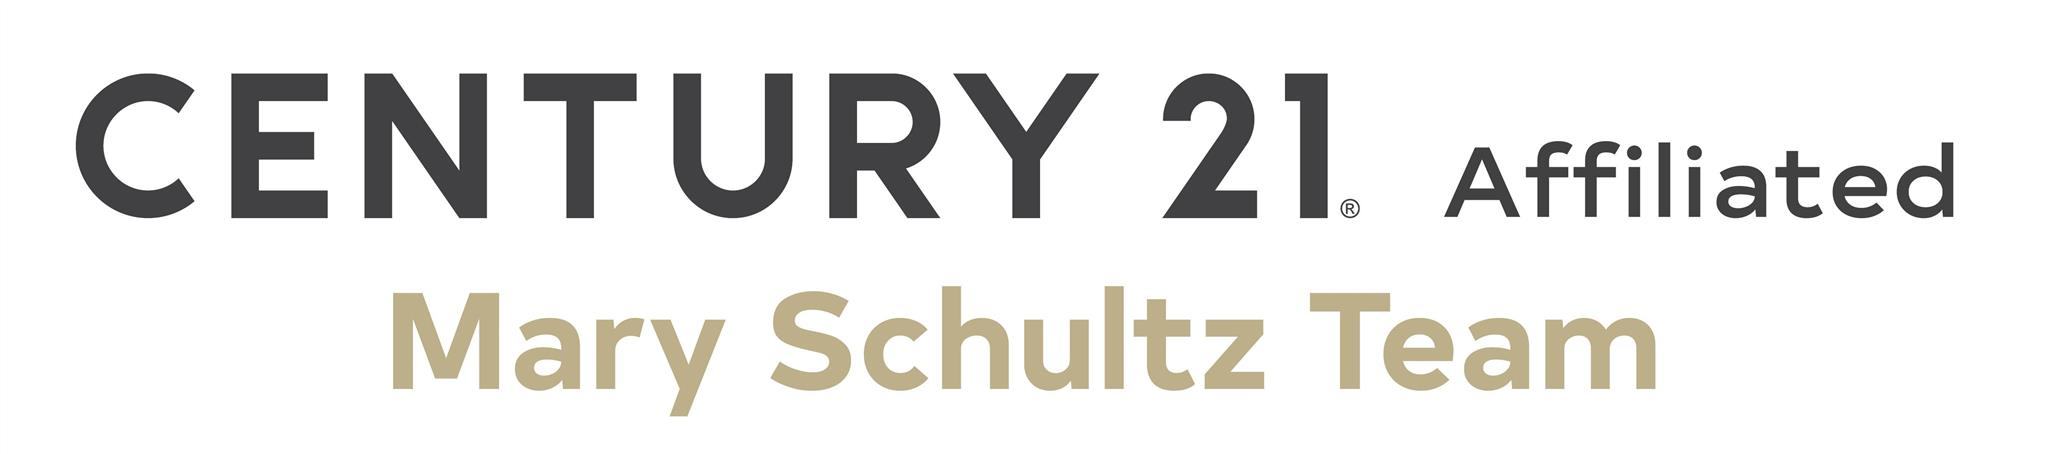 MarySchultzTeam.jpg